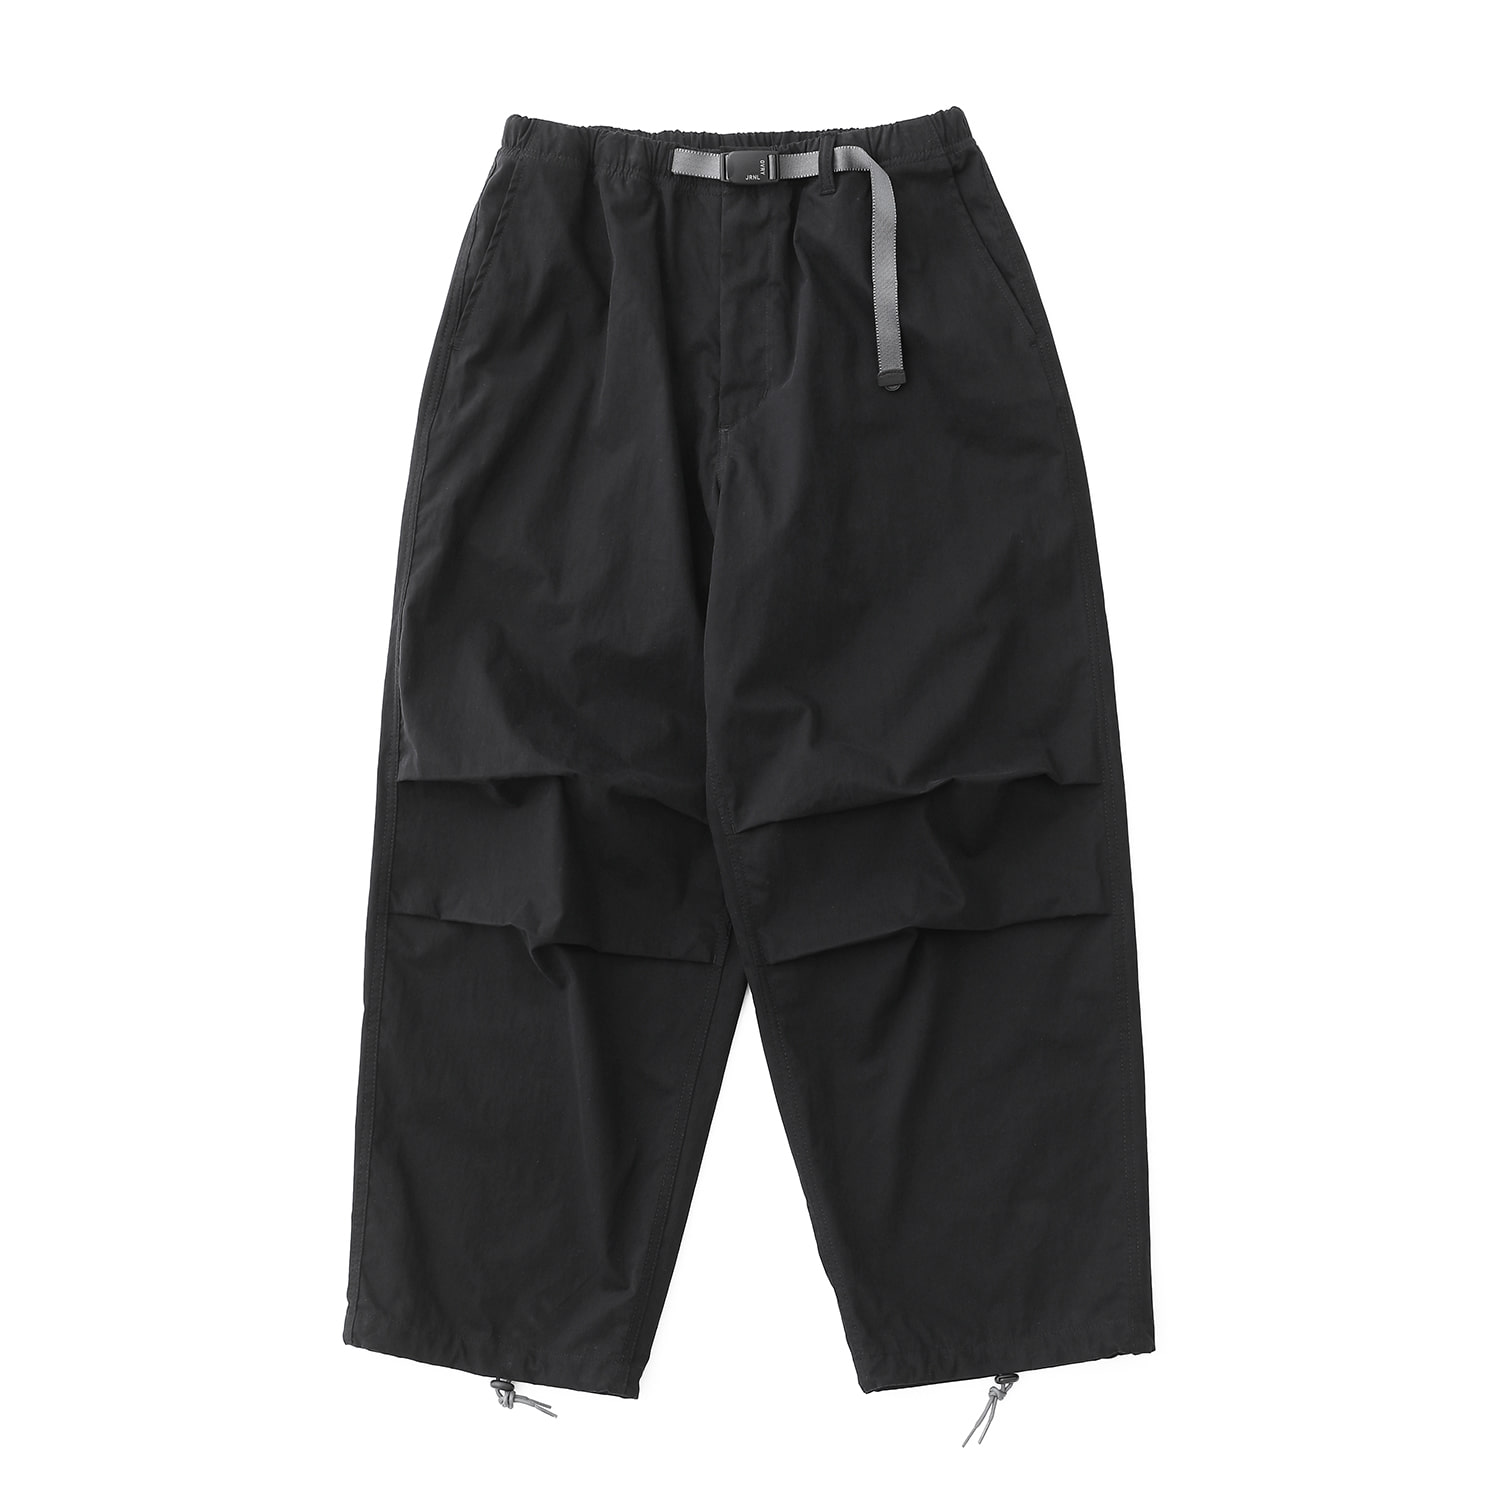 Overlay Pants (Black)